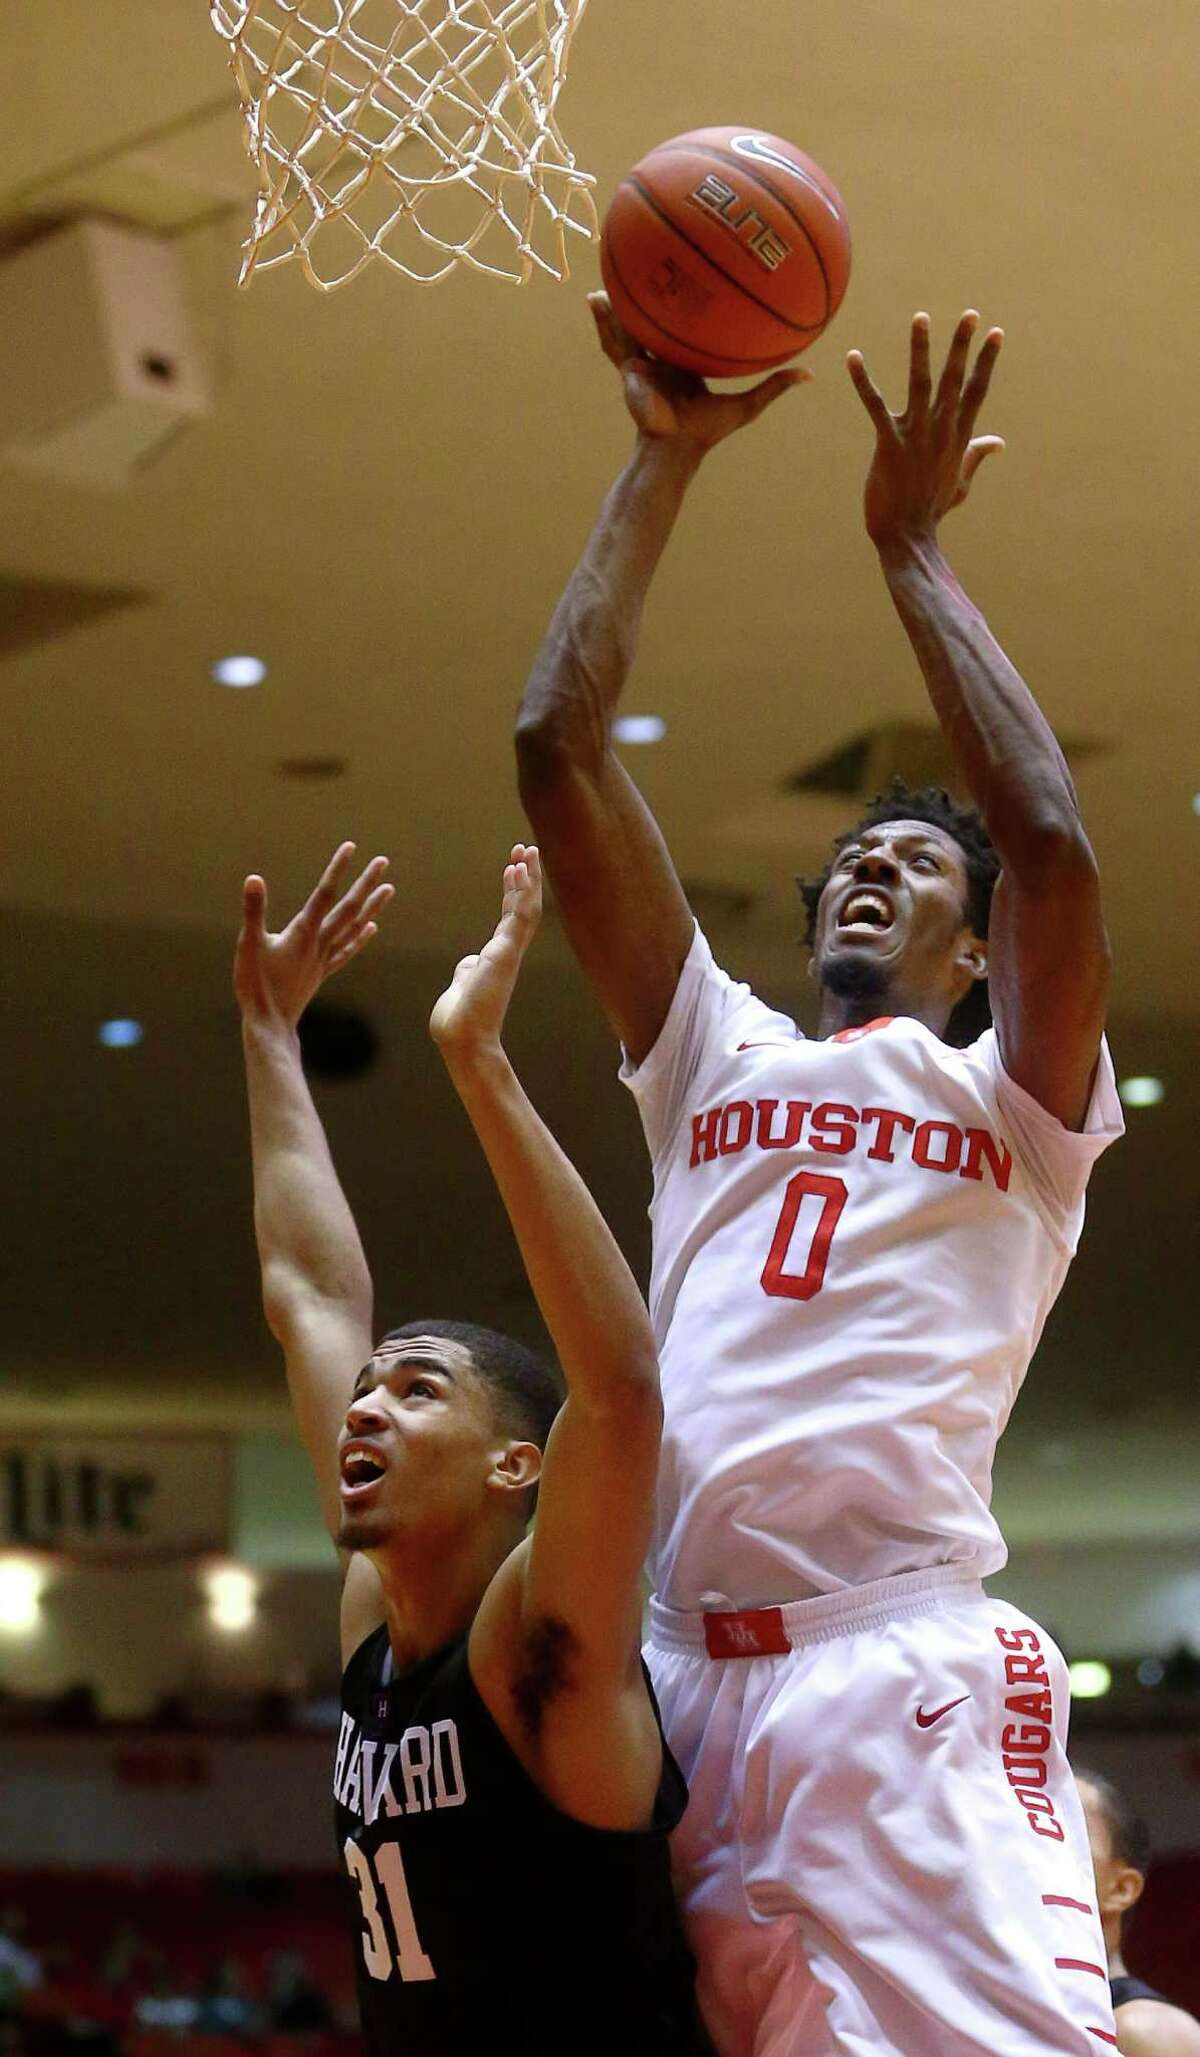 Houston Cougars forward Danrad Knowles (0) drives to the basket over Harvard Crimson forward Seth Towns (31)\during the first half of an NCAA basketball game at Hofheinz Pavilion, Friday, Dec. 23, 2016, in Houston.